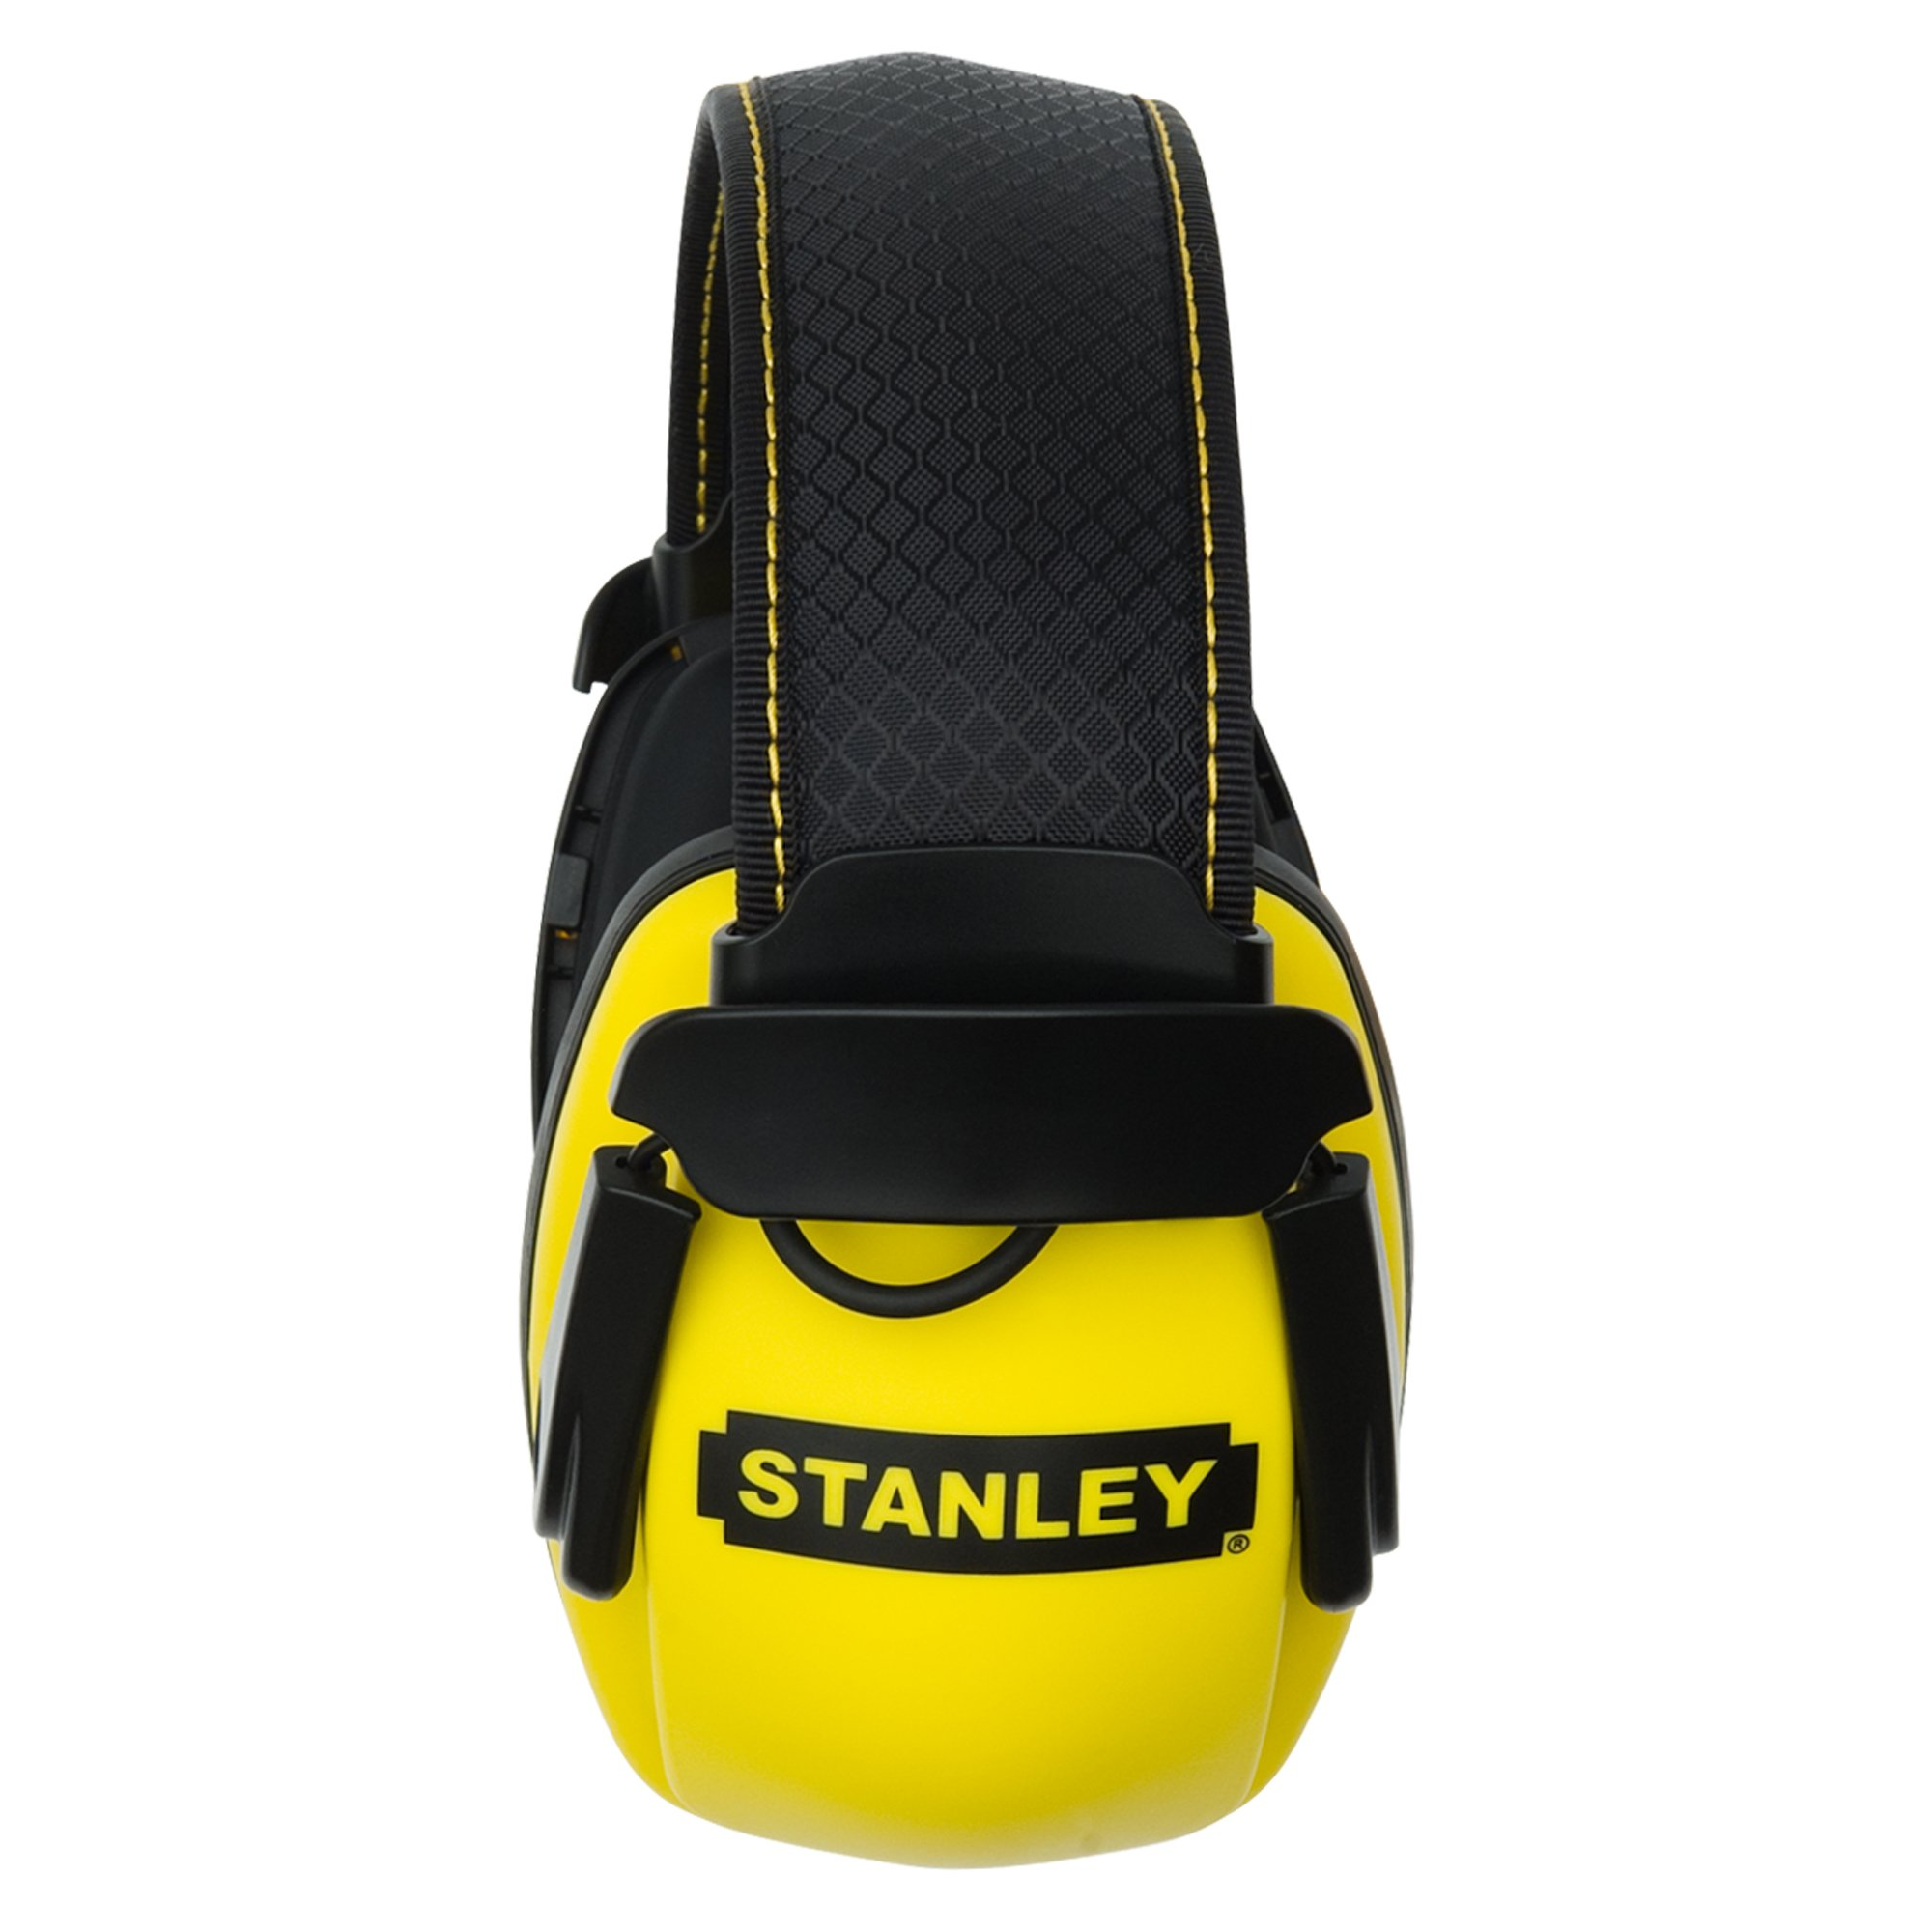 Stanley Sync Stereo Earmuff with MP3 Connection (RST-63011) by Stanley (Image #3)